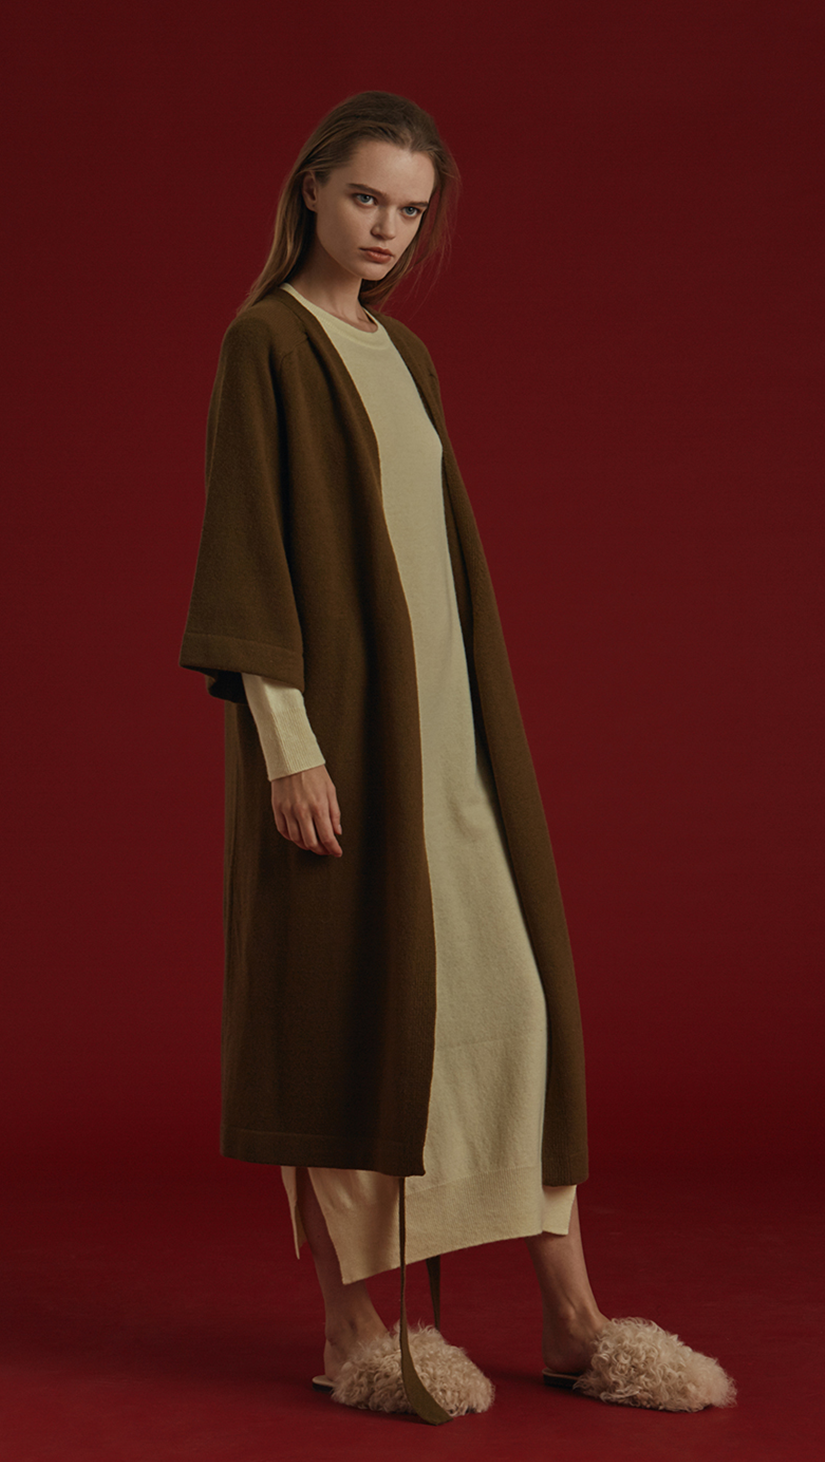 Oversized long sweater coat in khaki felted 100% wool. Long dolman sleeves, open front, drop shoulder, no pockets. Roomy fit. Detachable tie with buttons. Handmade.